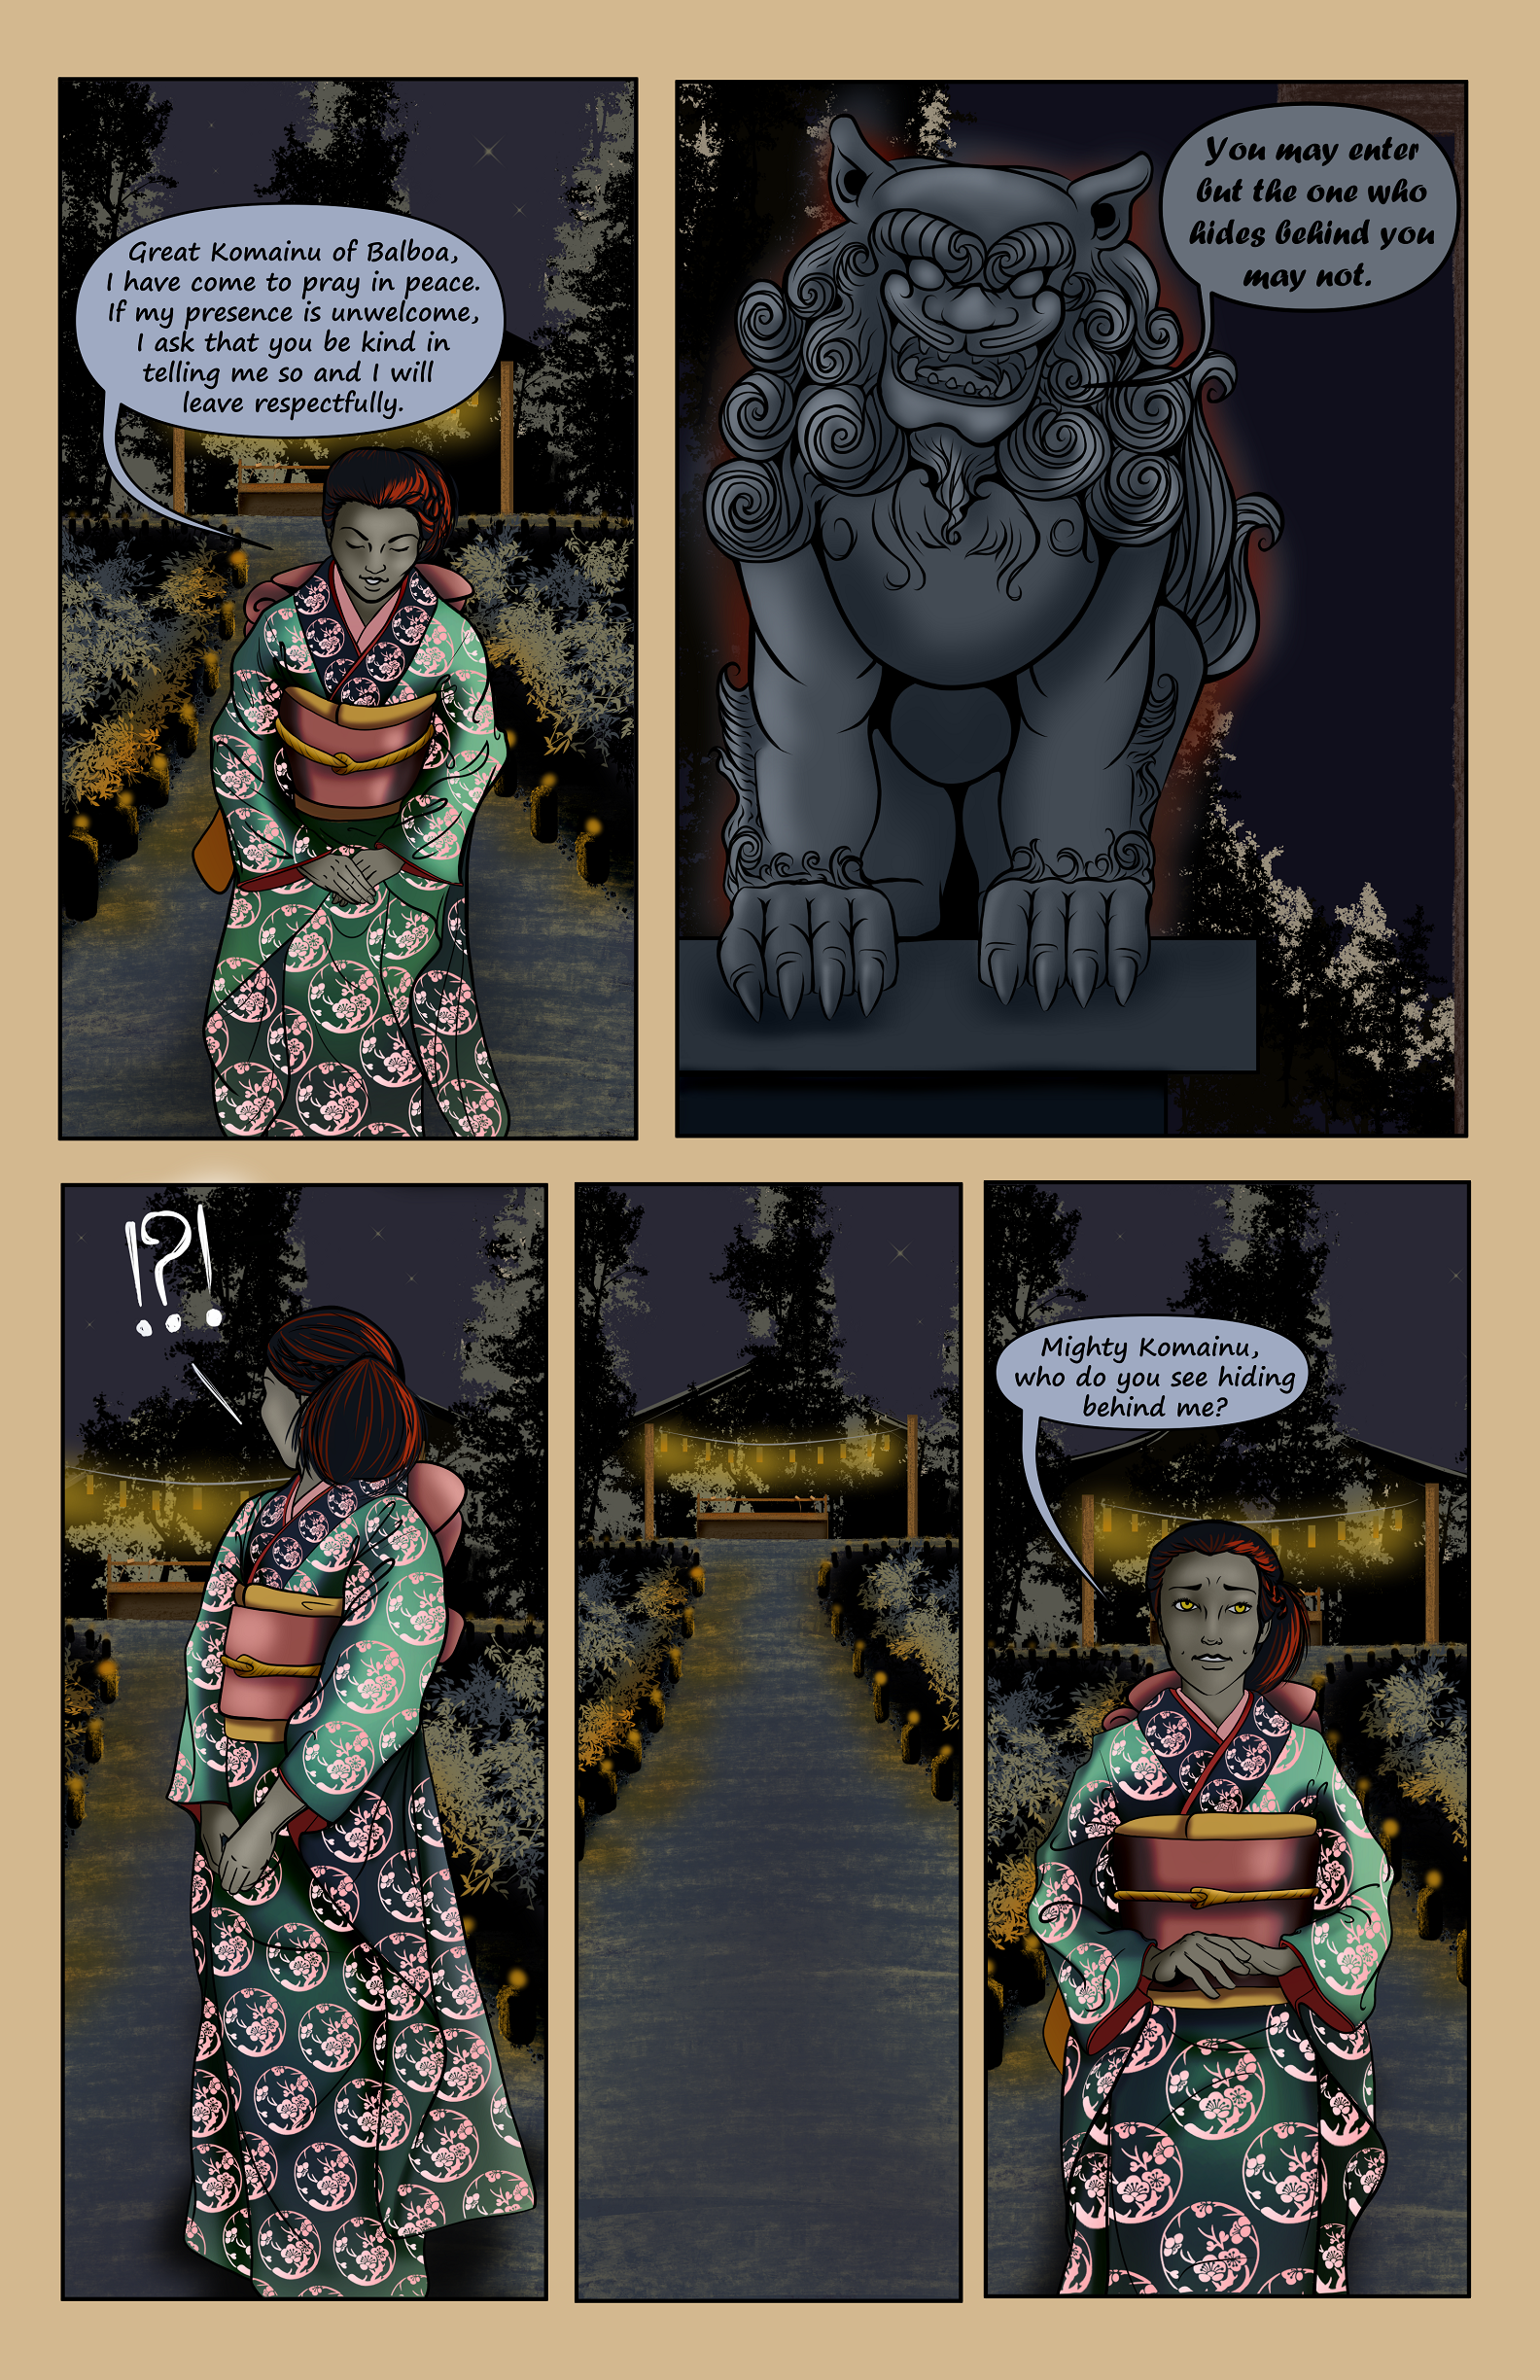 Ch 5: Page 7